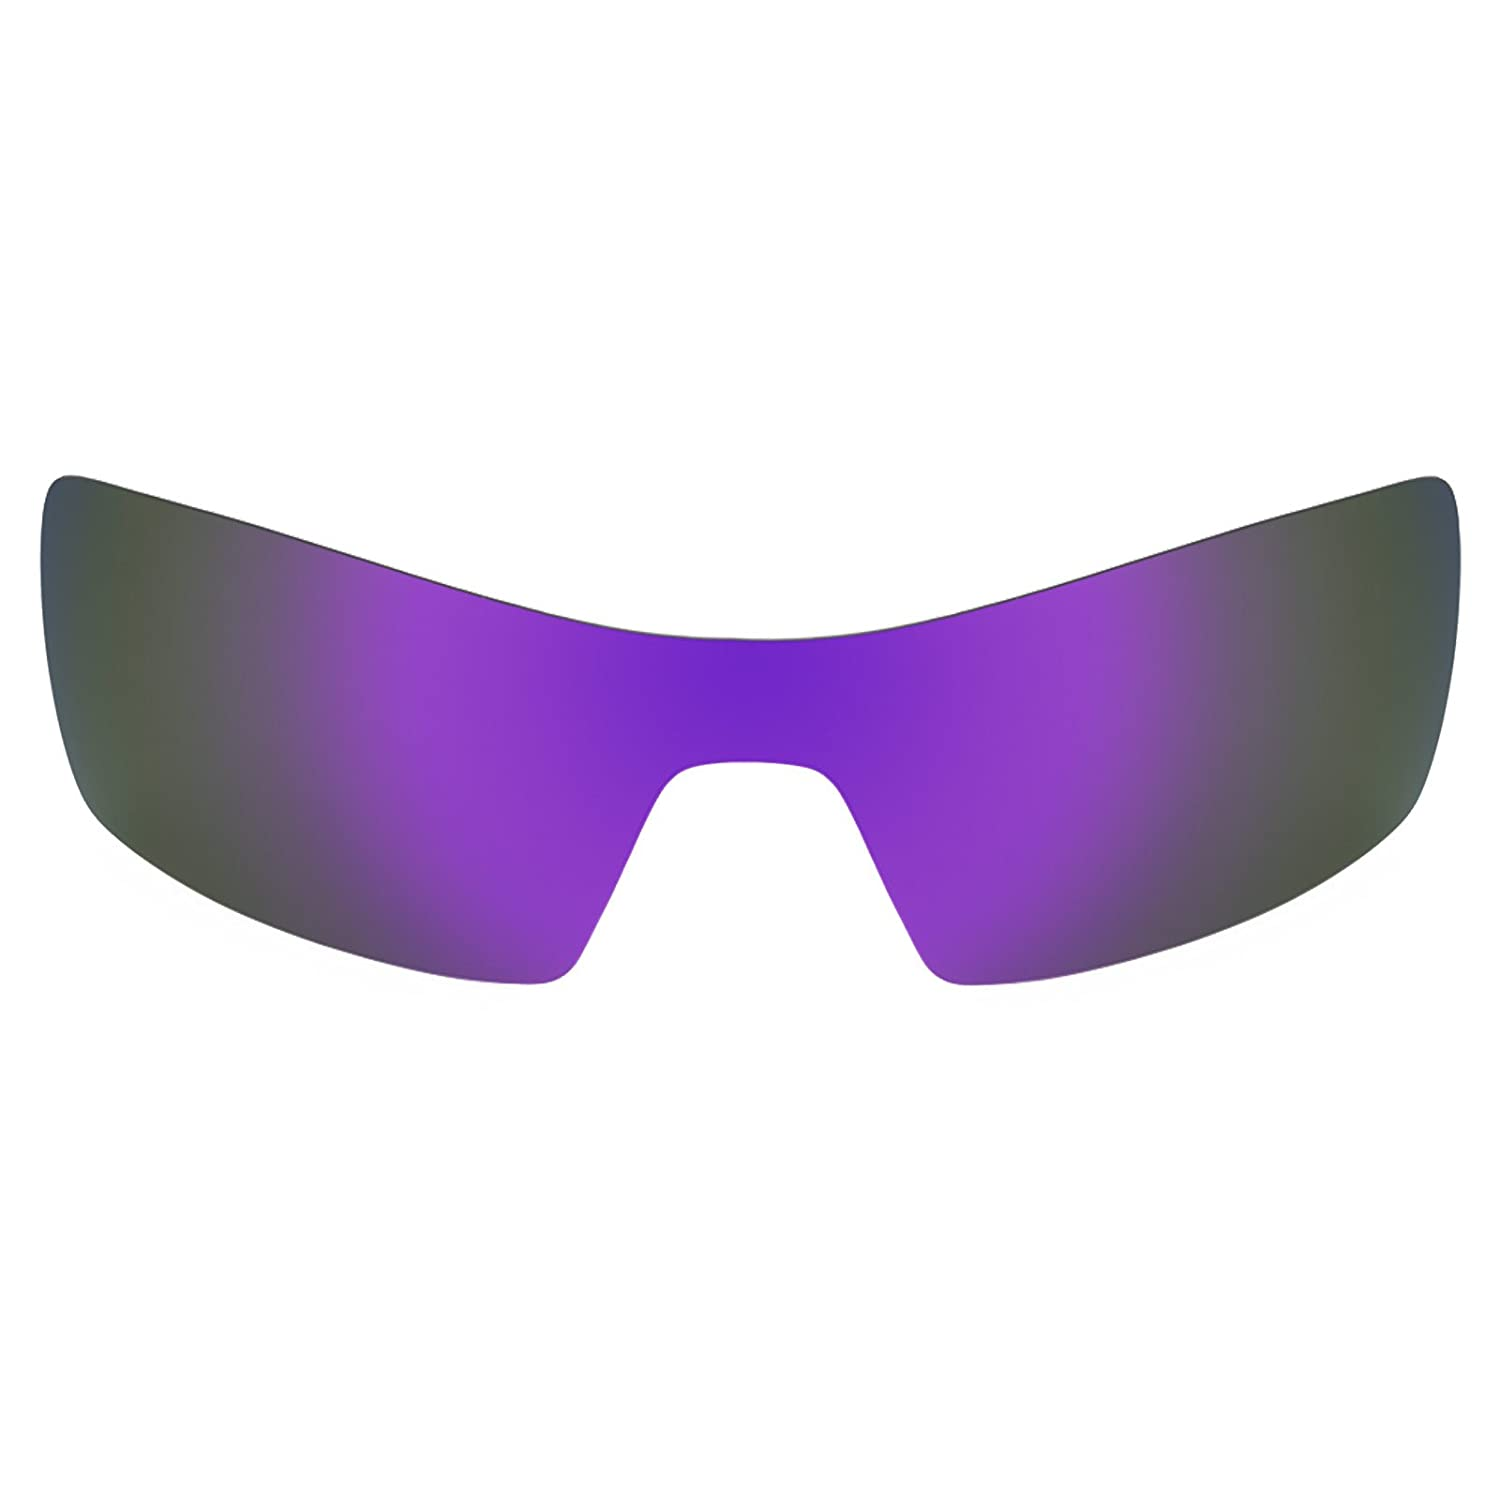 398c2c9c05 Revant Replacement Lens for Oakley Oil Rig Plasma Purple MirrorShield®   Amazon.ca  Sports   Outdoors